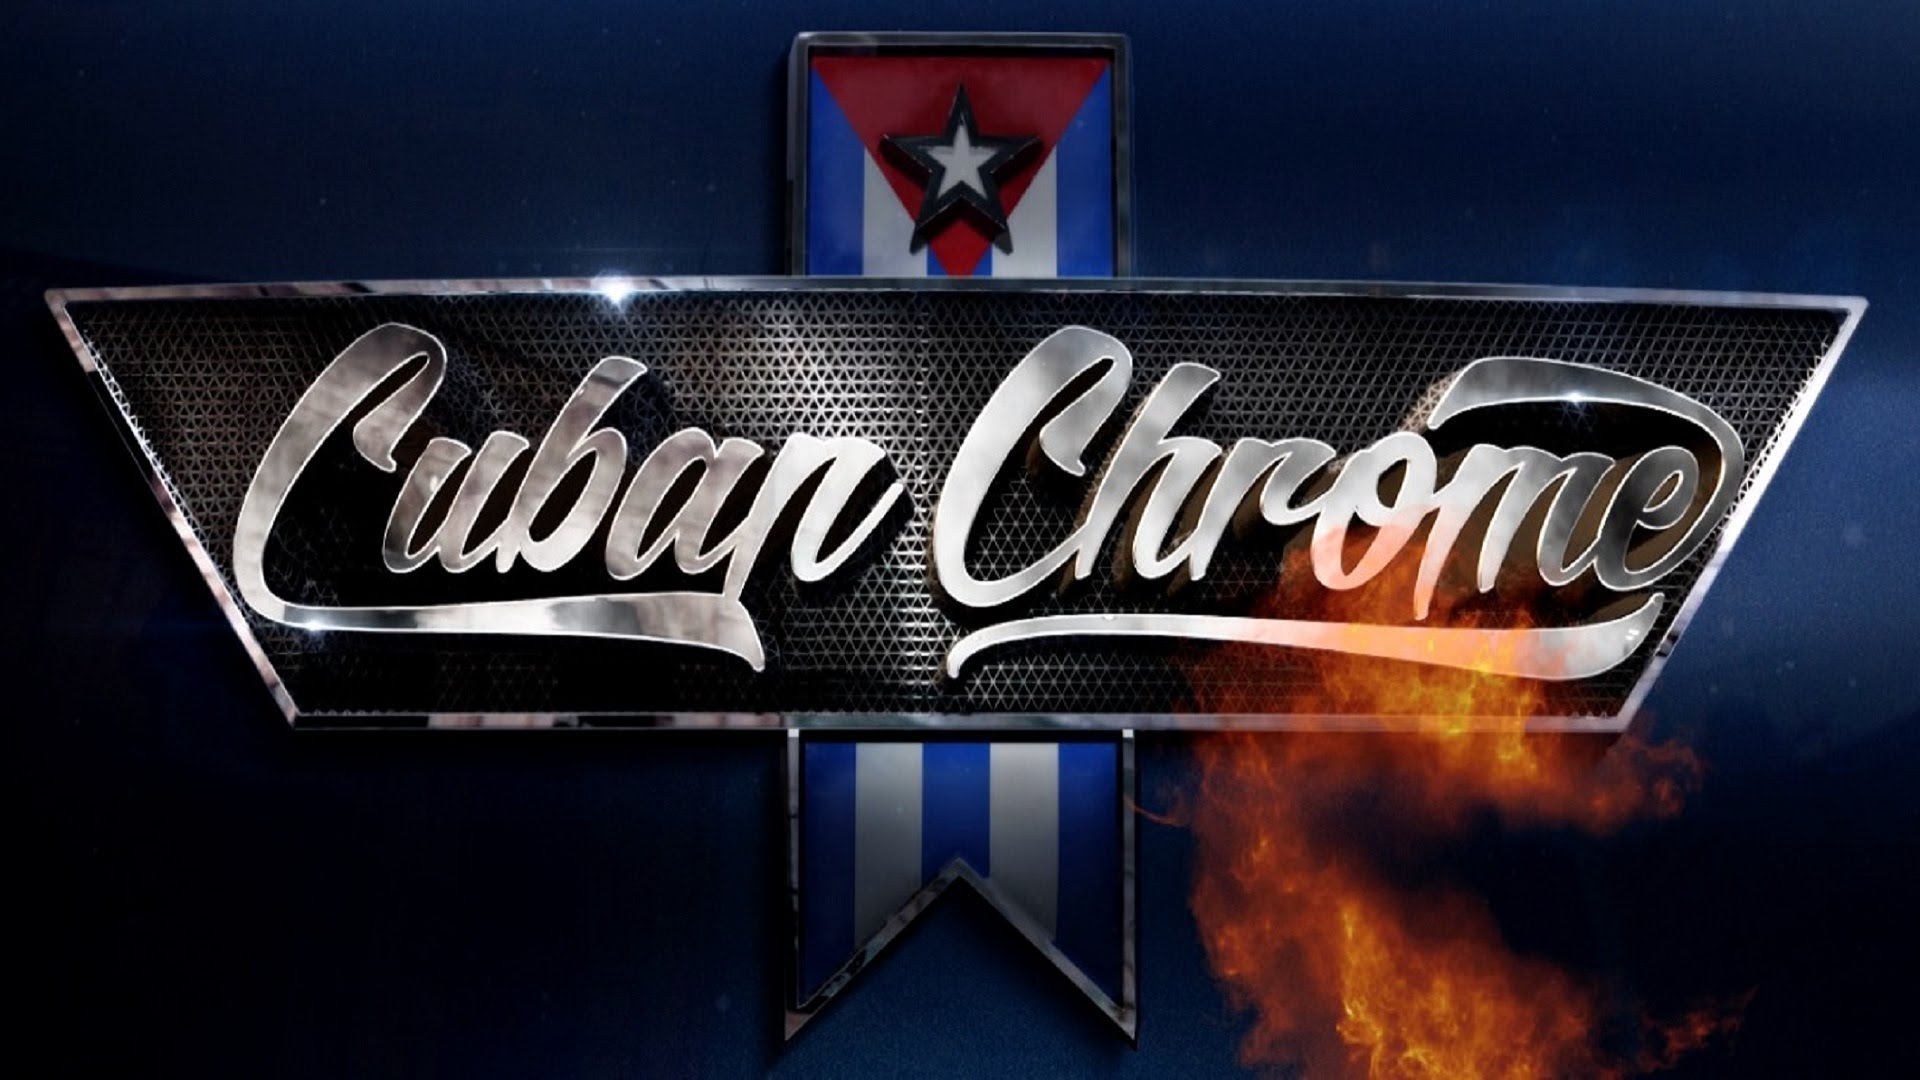 Cuban Chrome: Season 1